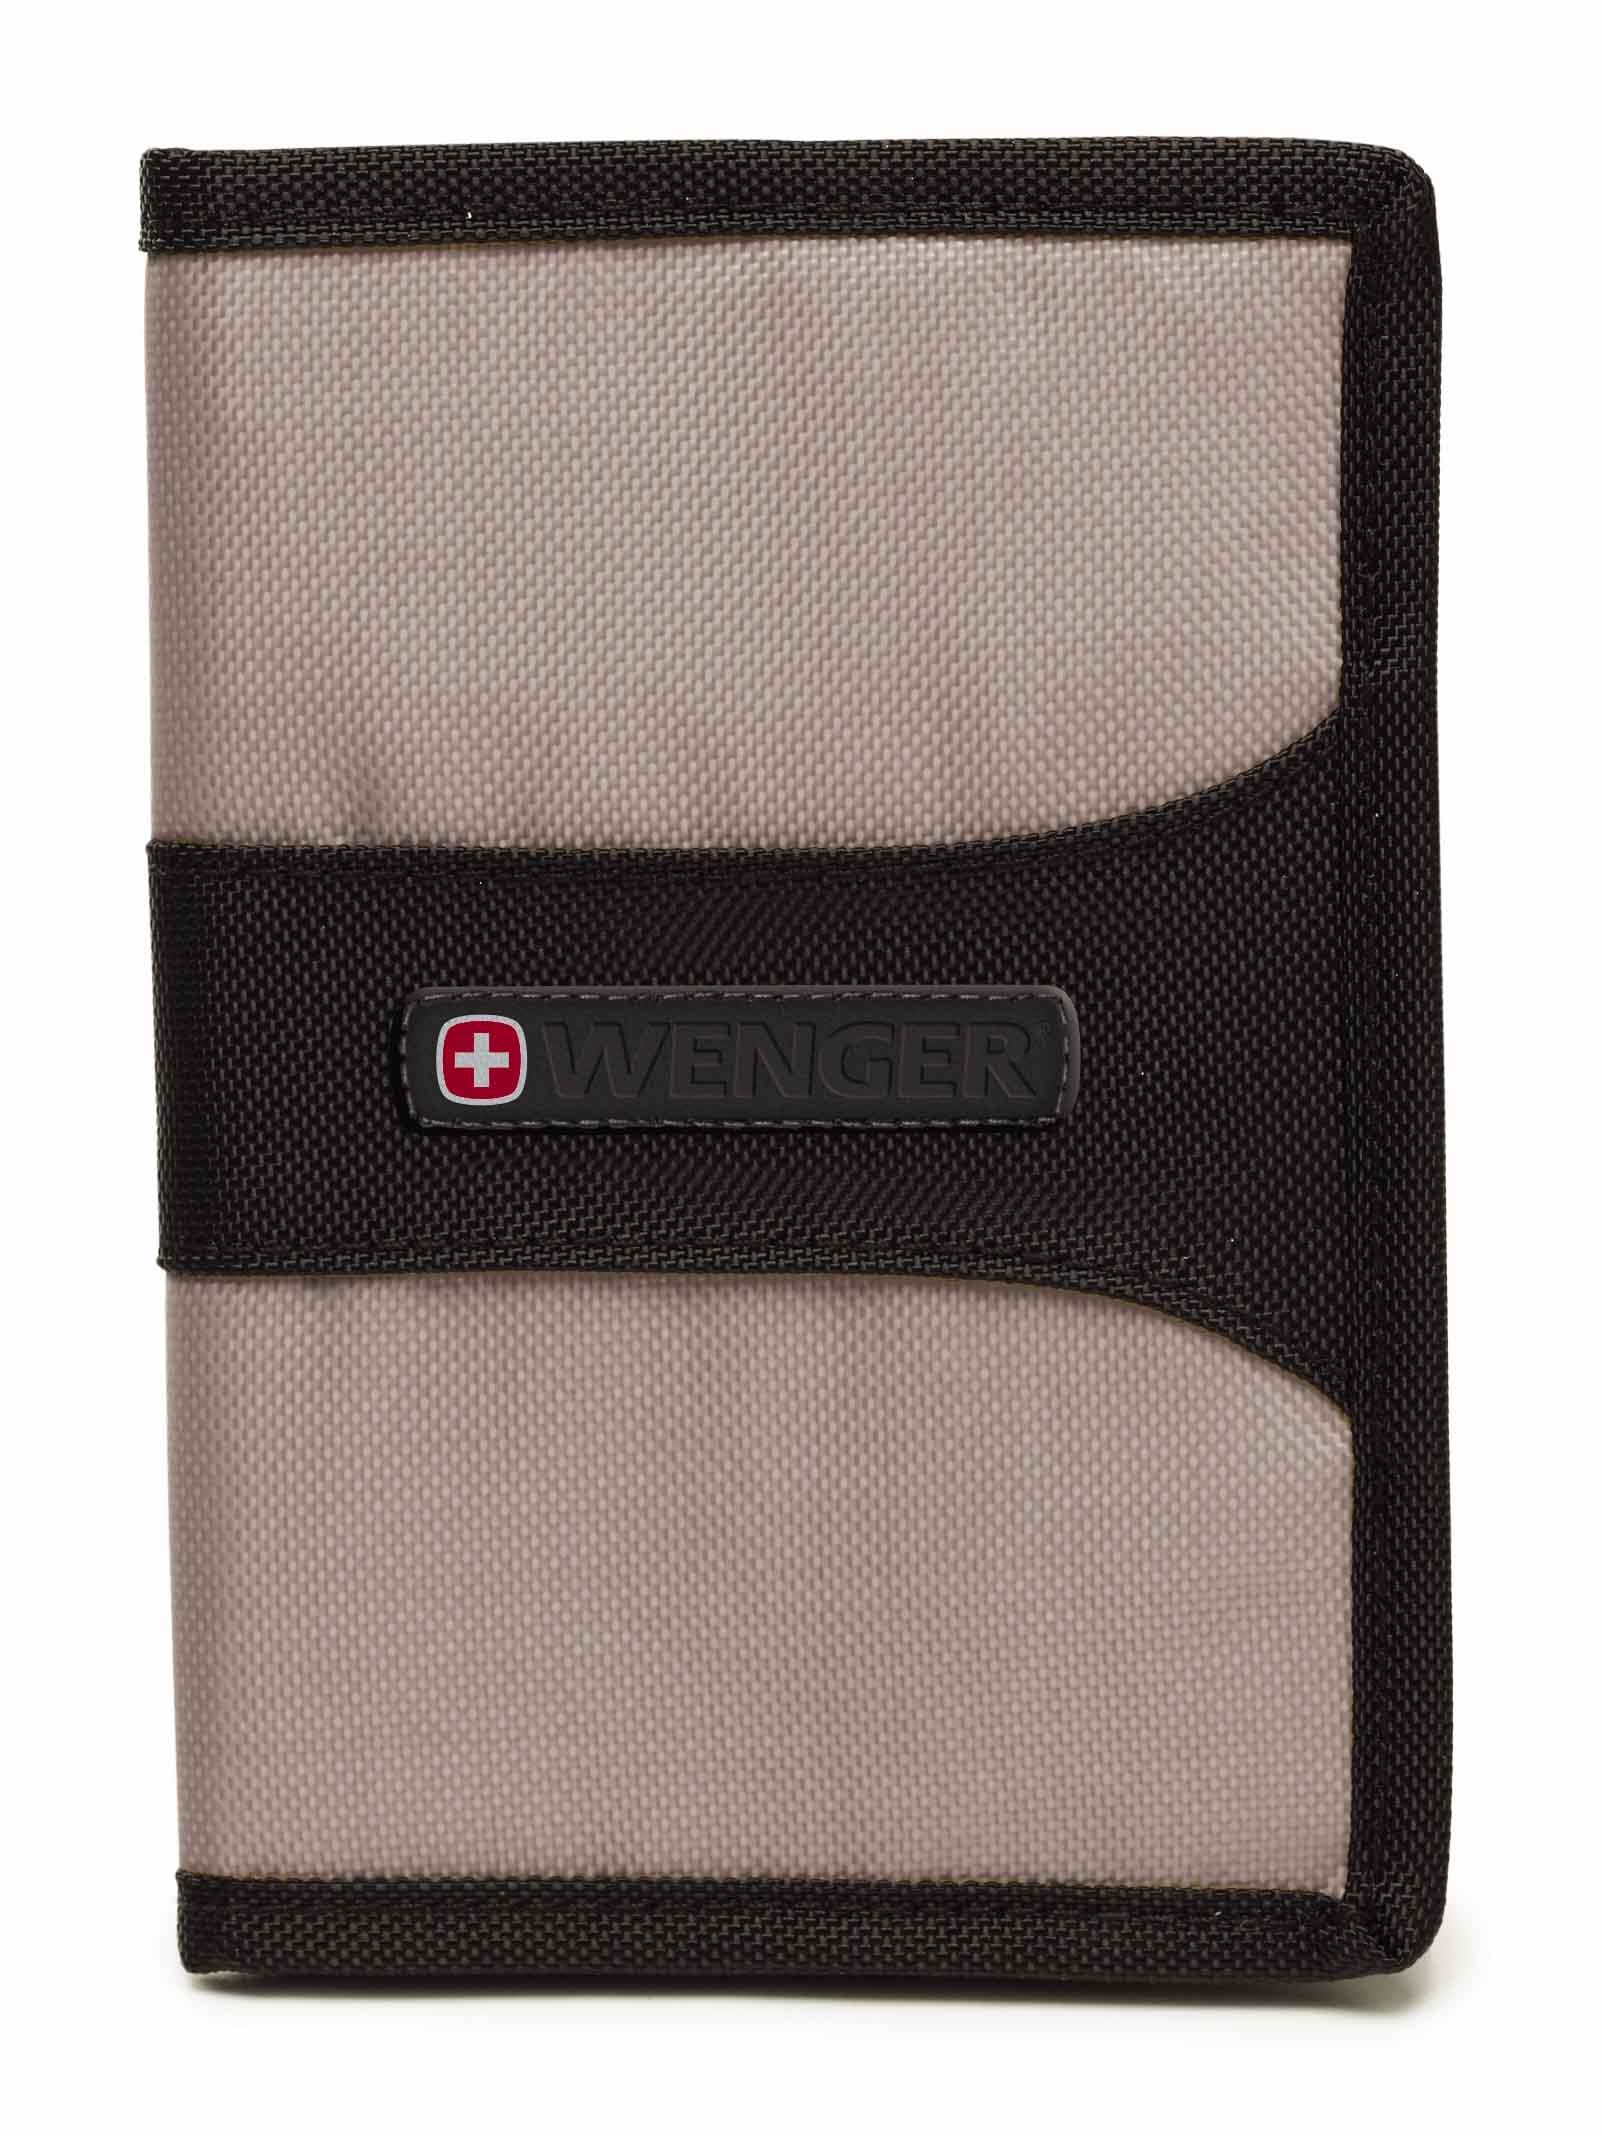 Wenger RFID Protection Passport Cover in Grey